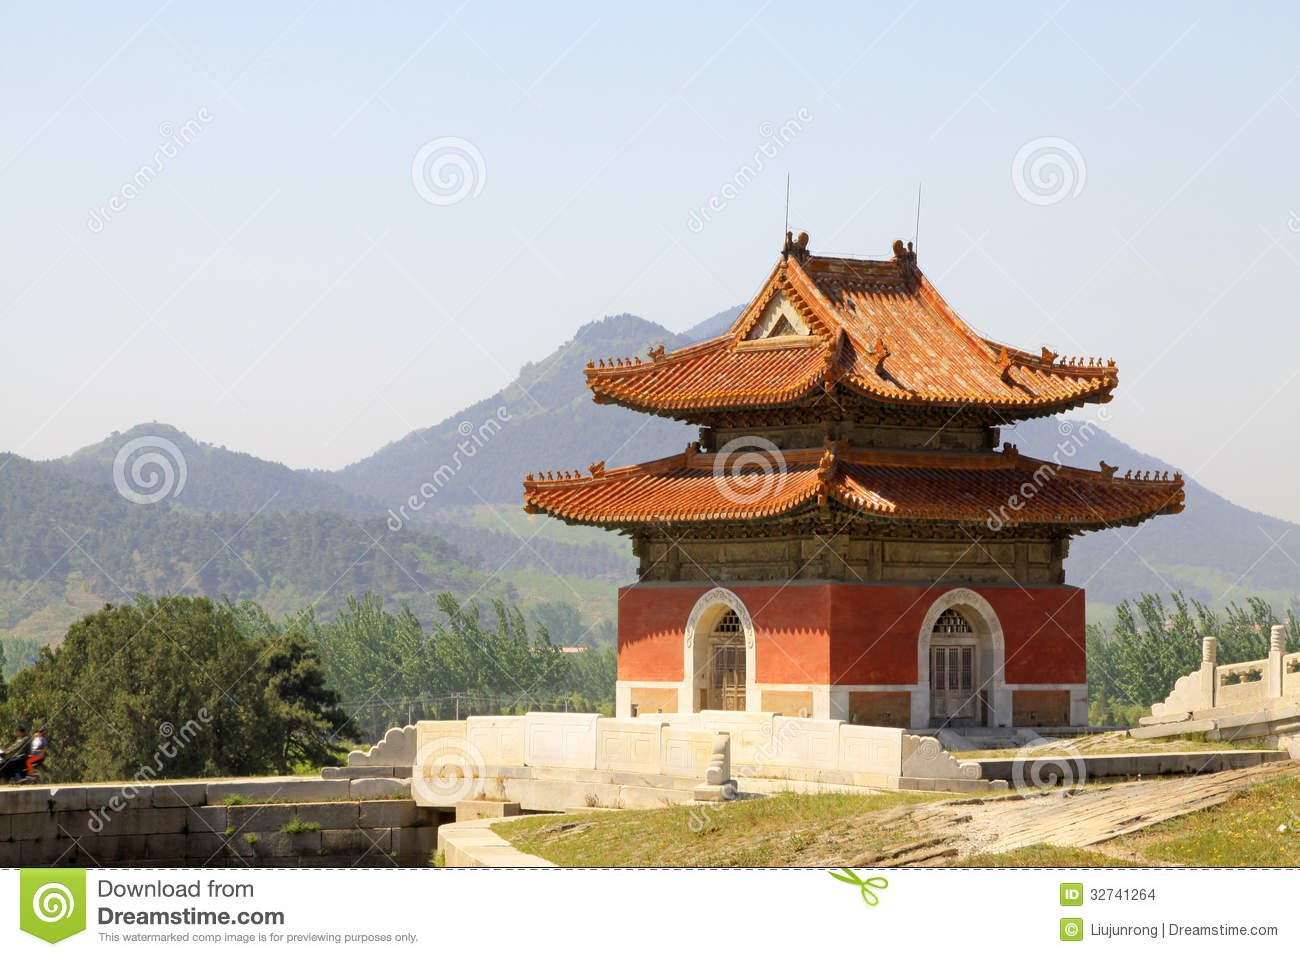 Qin Dynasty Art And Architecture Chinese ancient architectureQin Dynasty Architecture